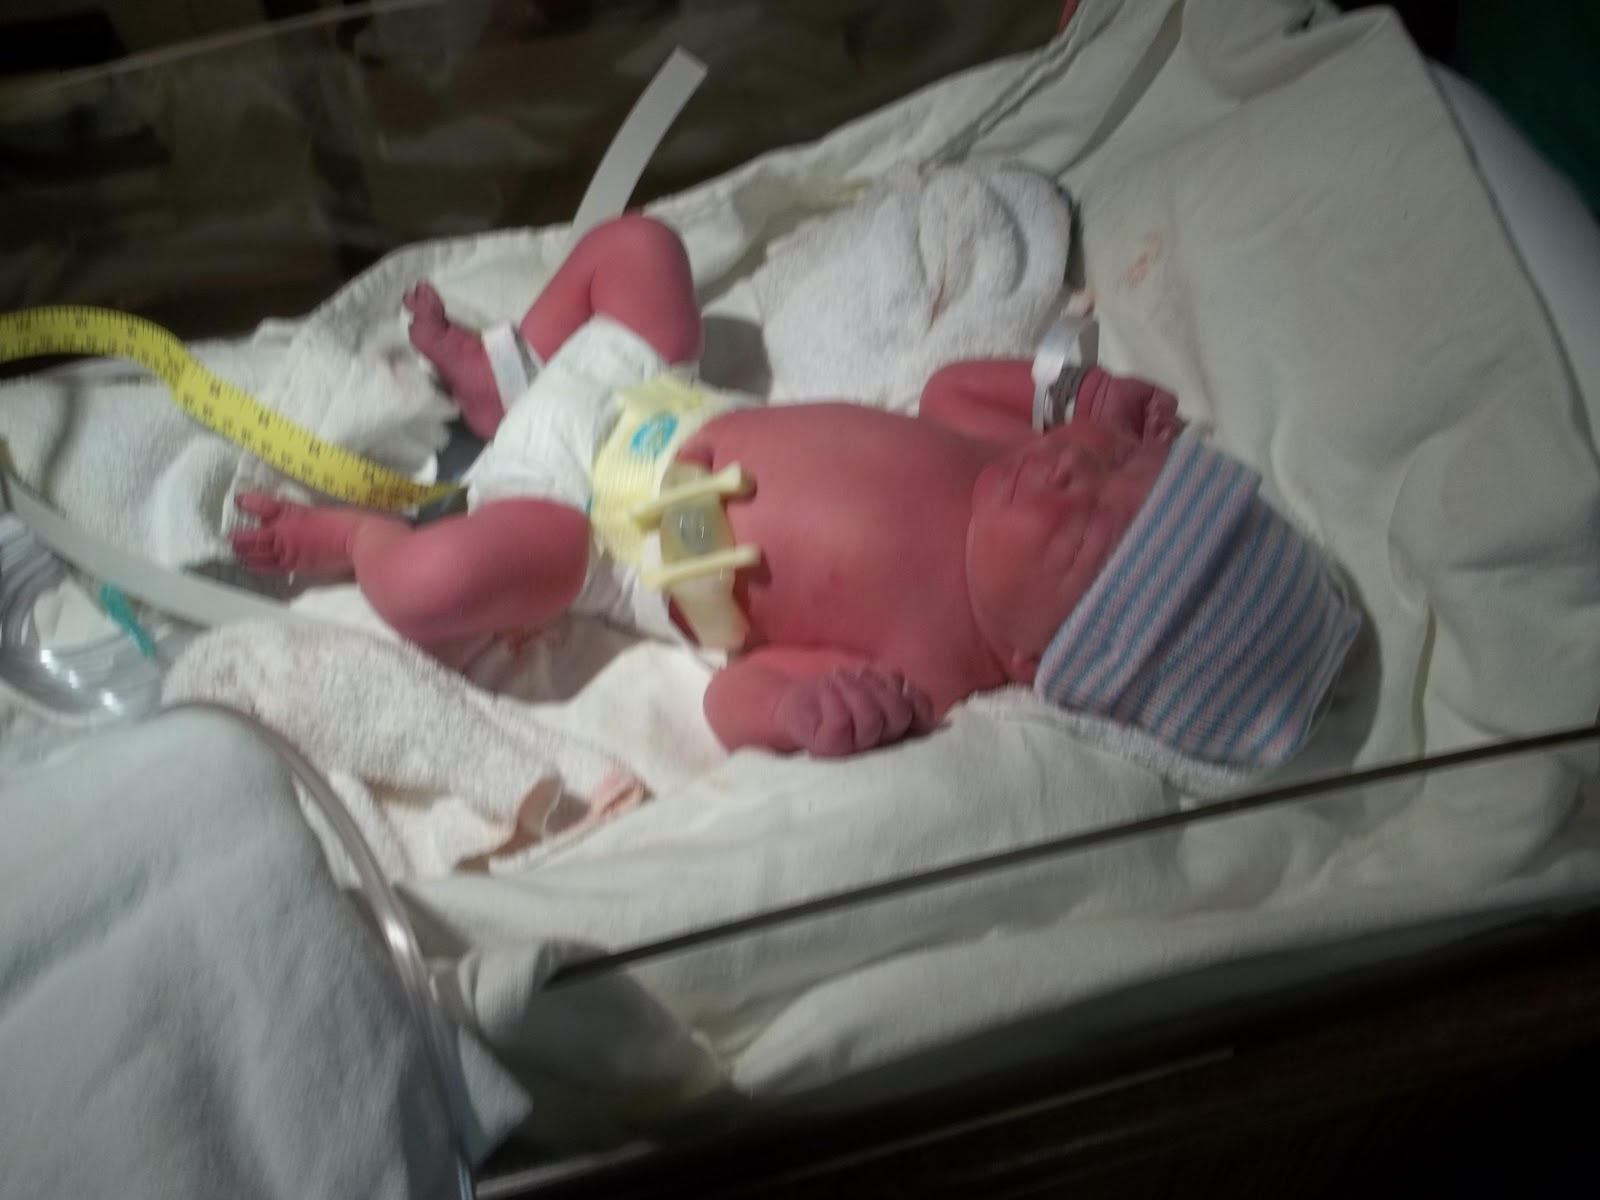 baby born at 35 weeks